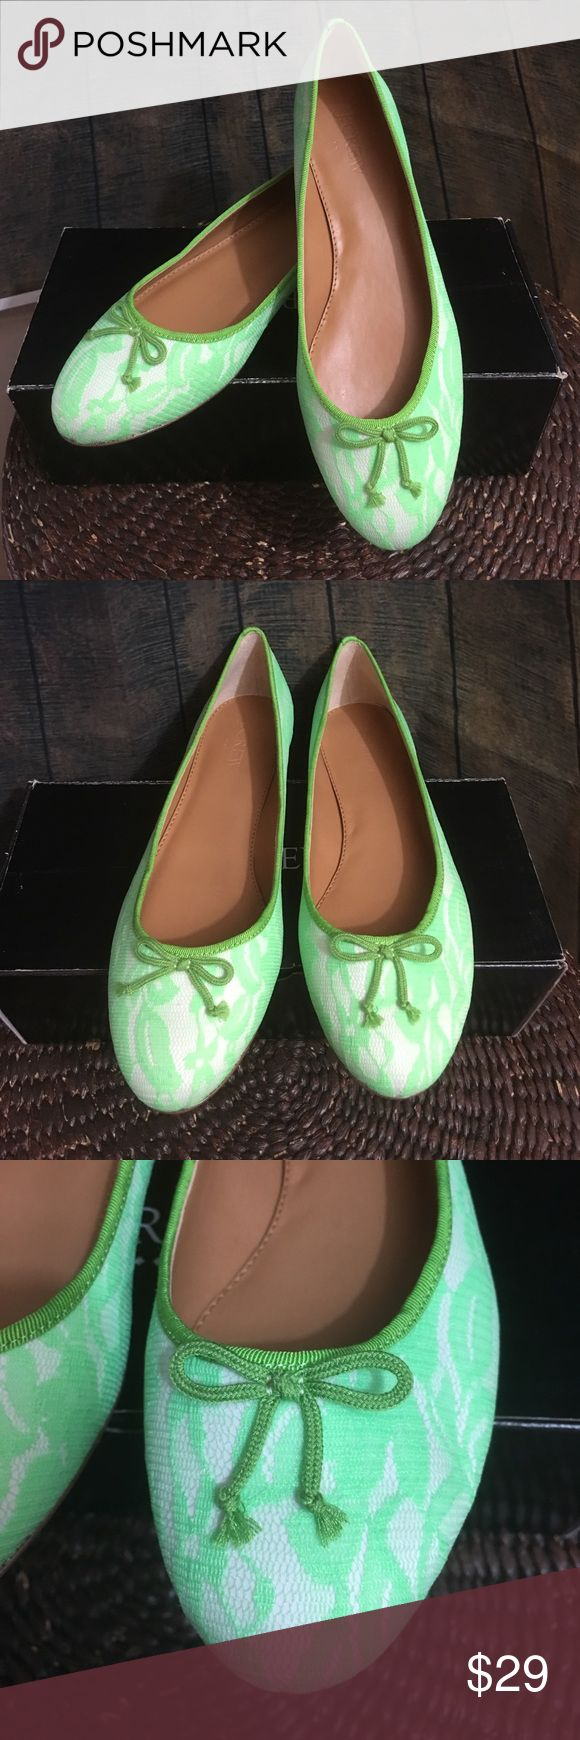 J.Crew Lace uptown Ballet Flats 7.5 NWT J.crew Green Lace Ballet Flat size 7.5 J.Crew Factory Shoes Flats & Loafers